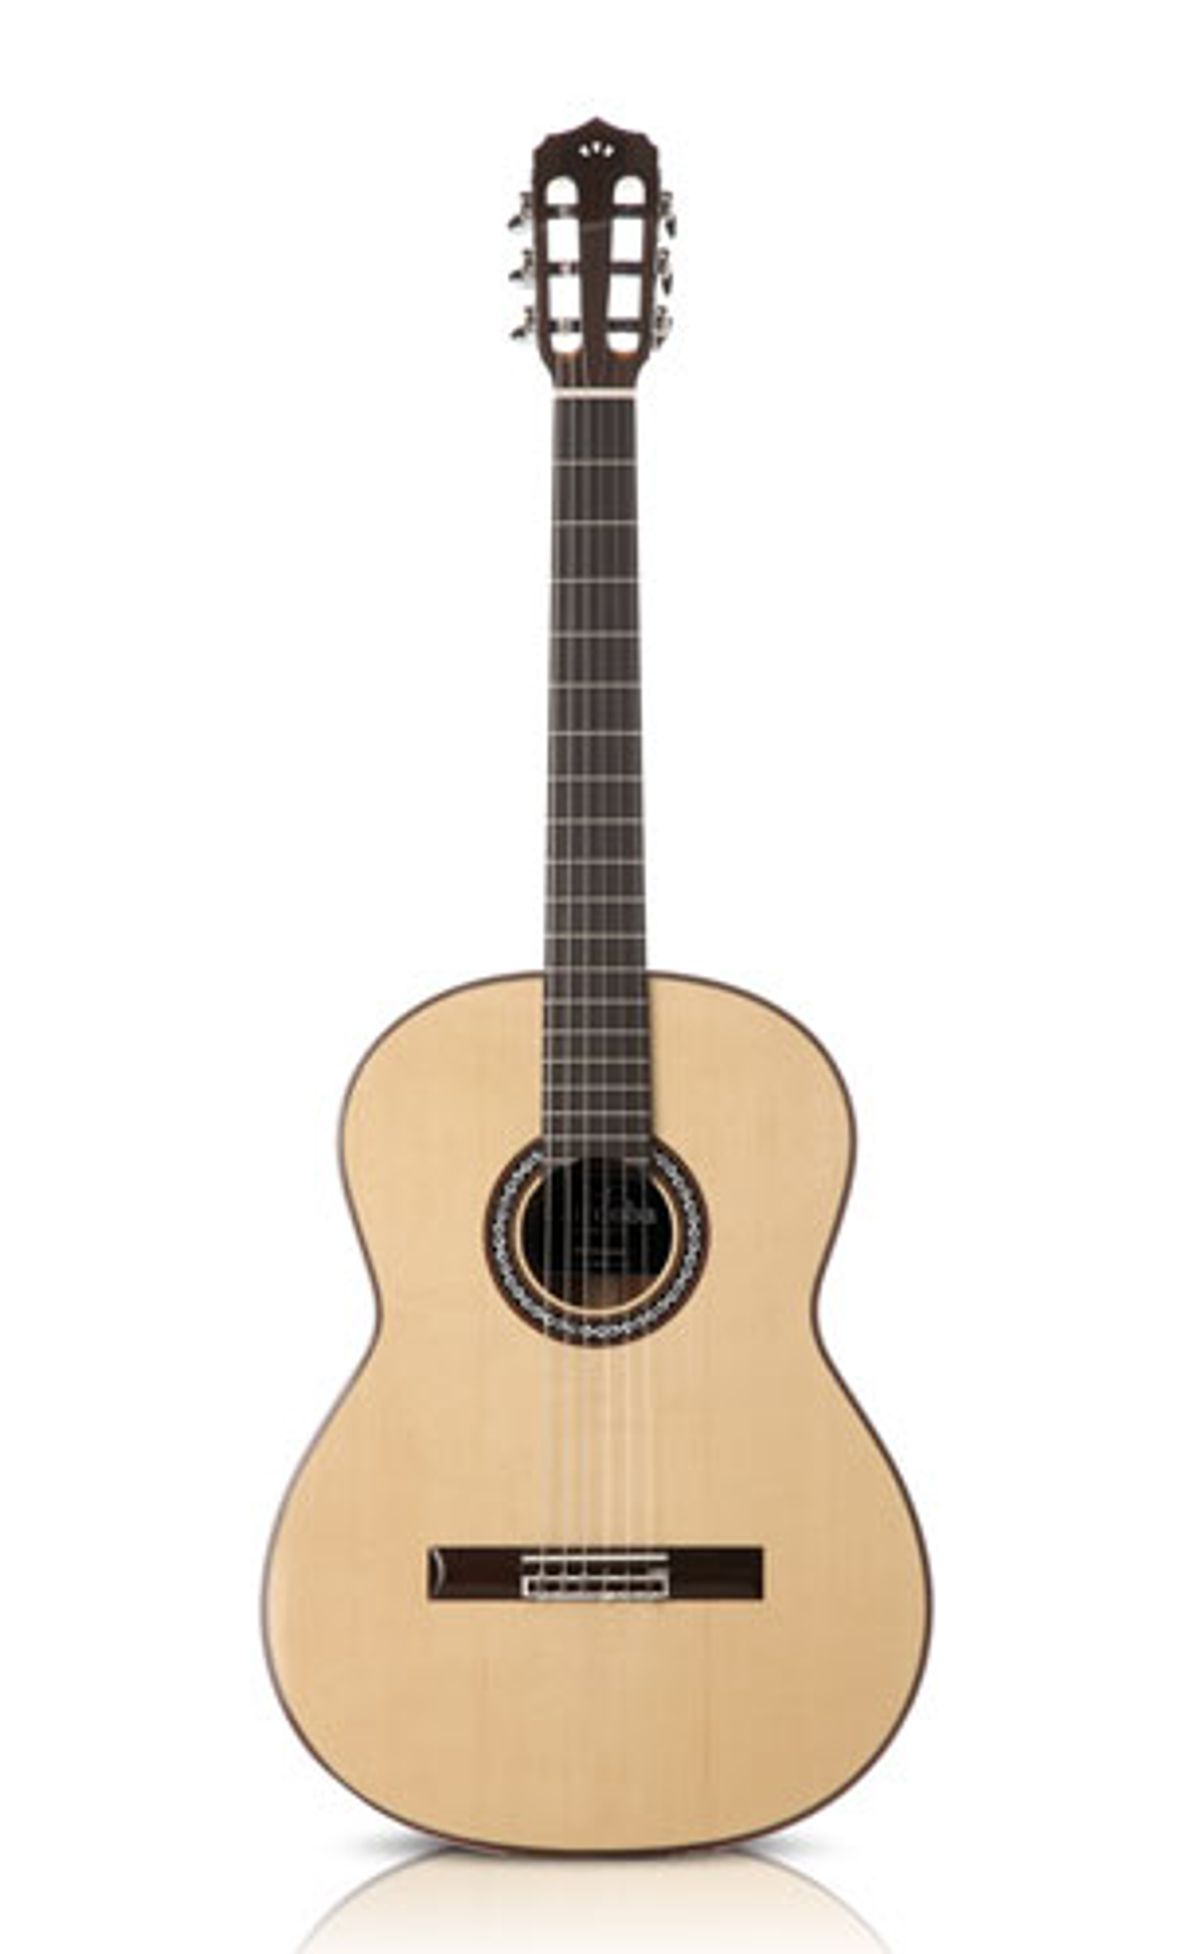 Cordoba Guitars Introduces Steel-String Models, New Parlor Guitars, and Updated Crossover Series